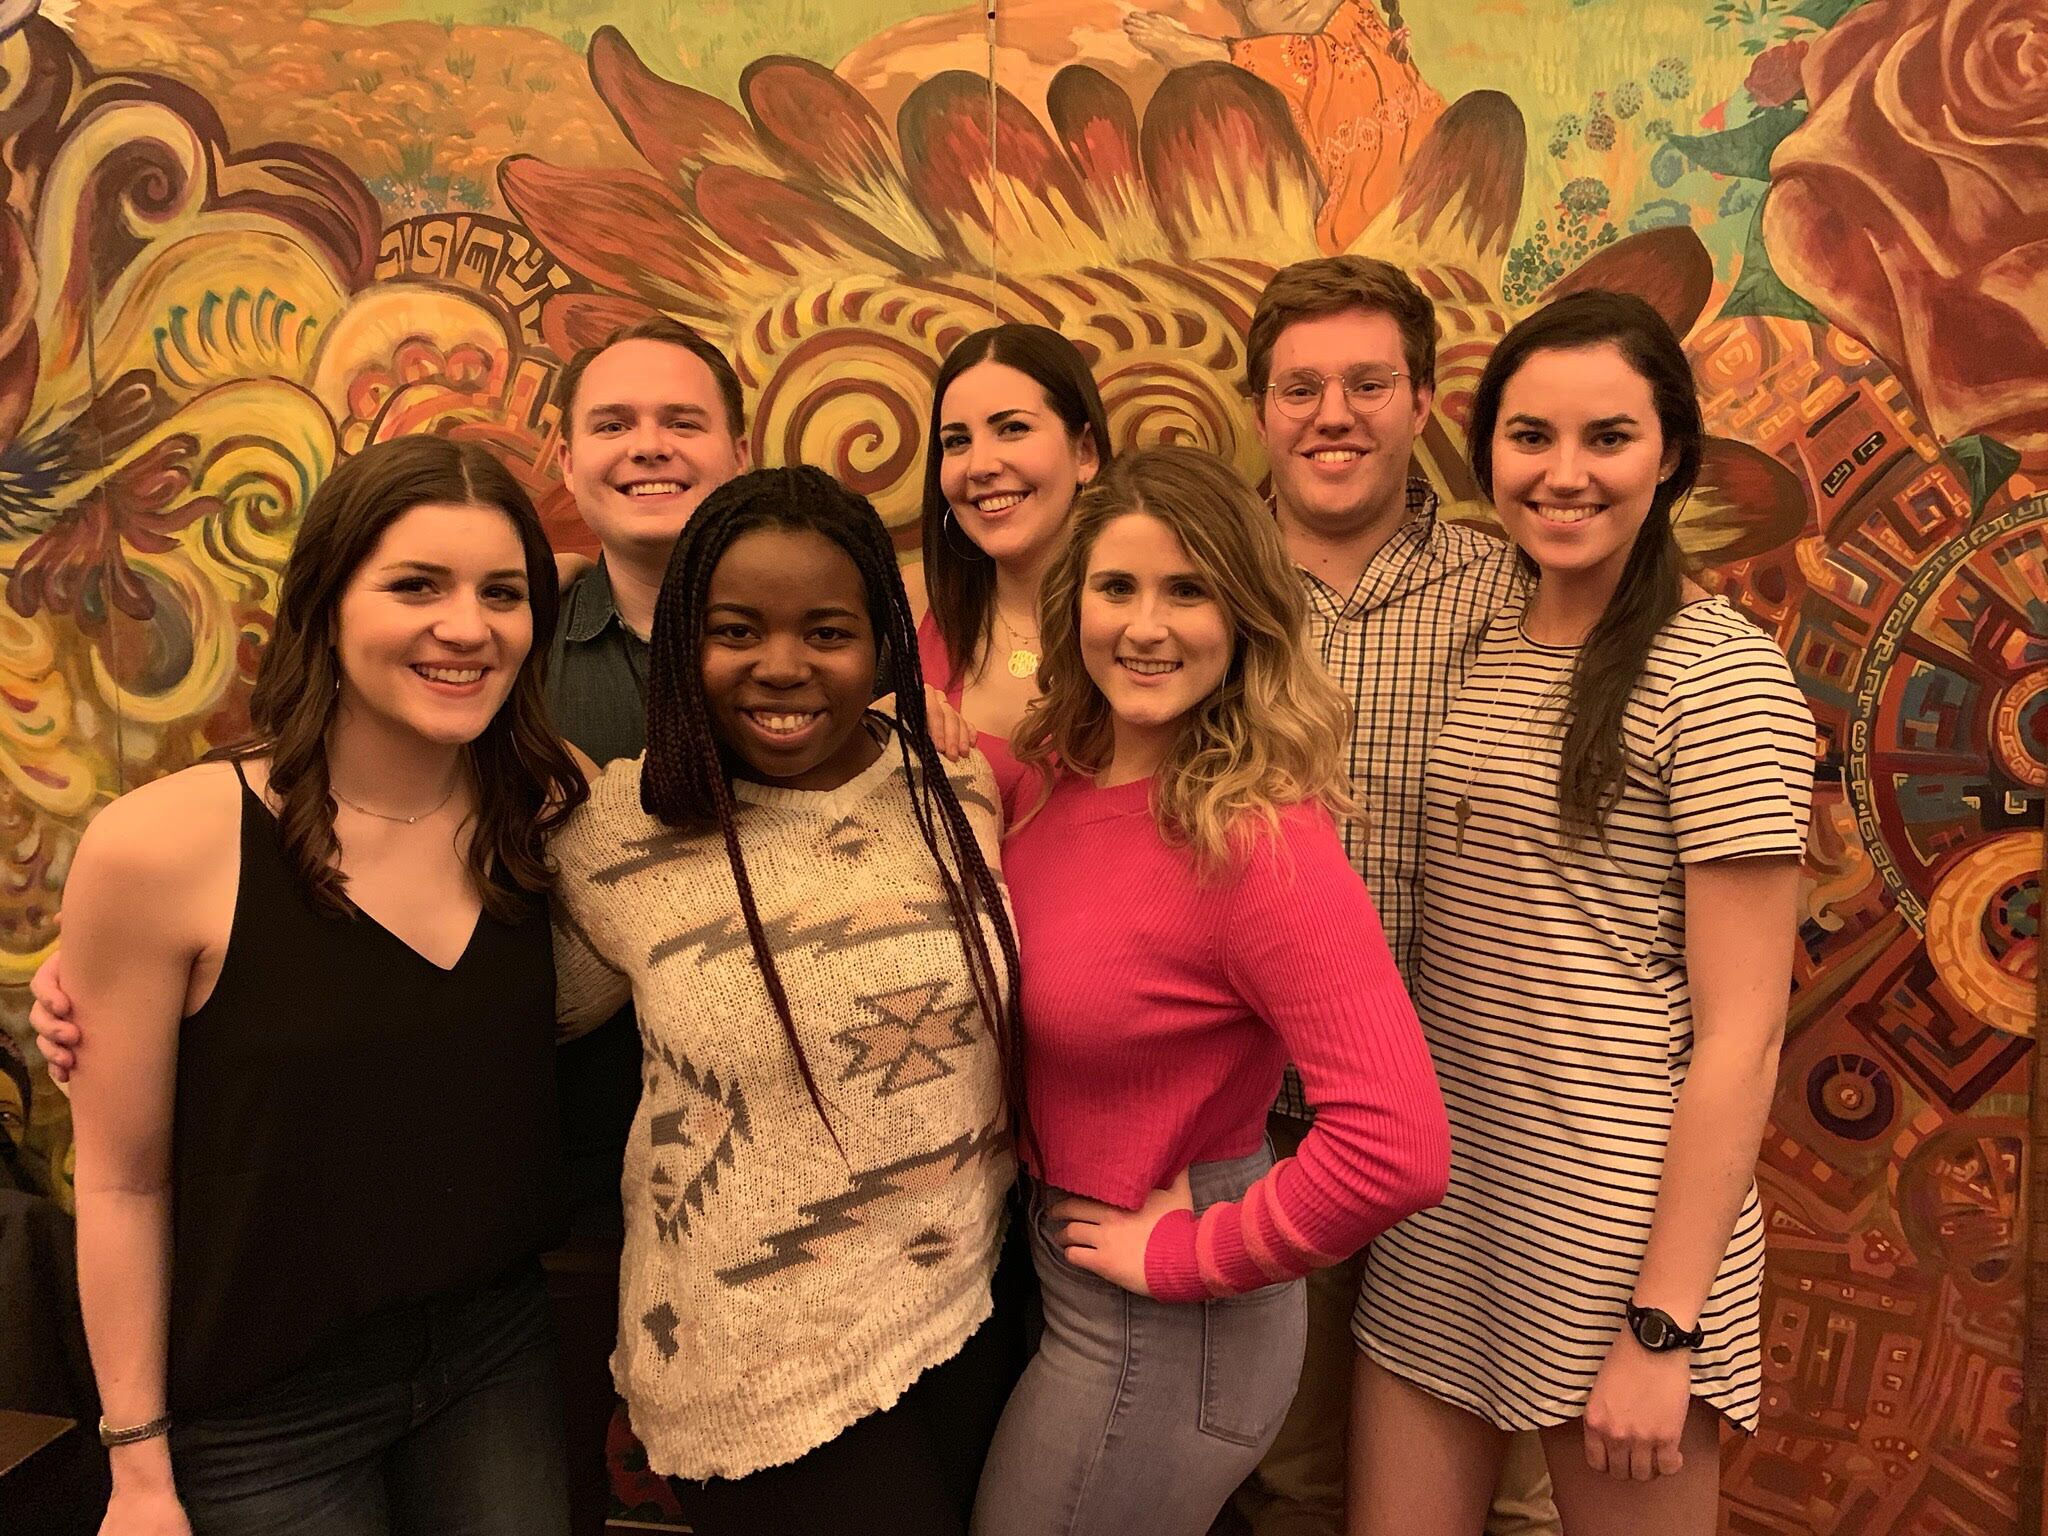 New and old SBA officers gathered at the Bebedero for a celebratory meal. L-R: Frances Fuqua '19, MacLane Taggart '19, Jasmine Lee '20, Julia Wahl '19, Rachel Staub '20, Trevor Quick '20, Katherine Janes '21. Photo courtesy F. Fuqua.